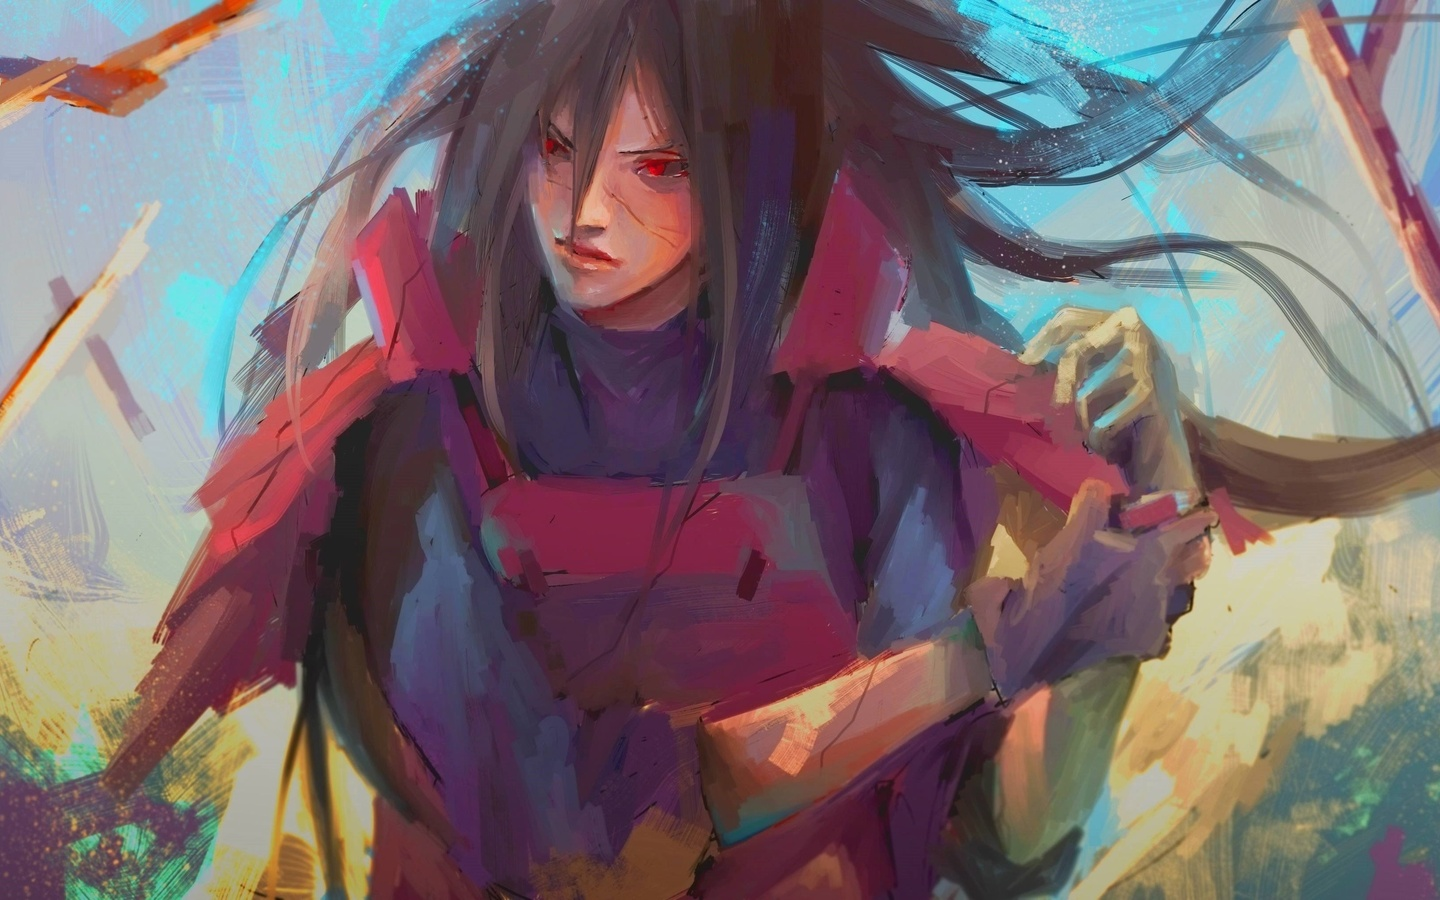 1440x900 Madara Uchiha Naruto 1440x900 Resolution Hd 4k Wallpapers Images Backgrounds Photos And Pictures